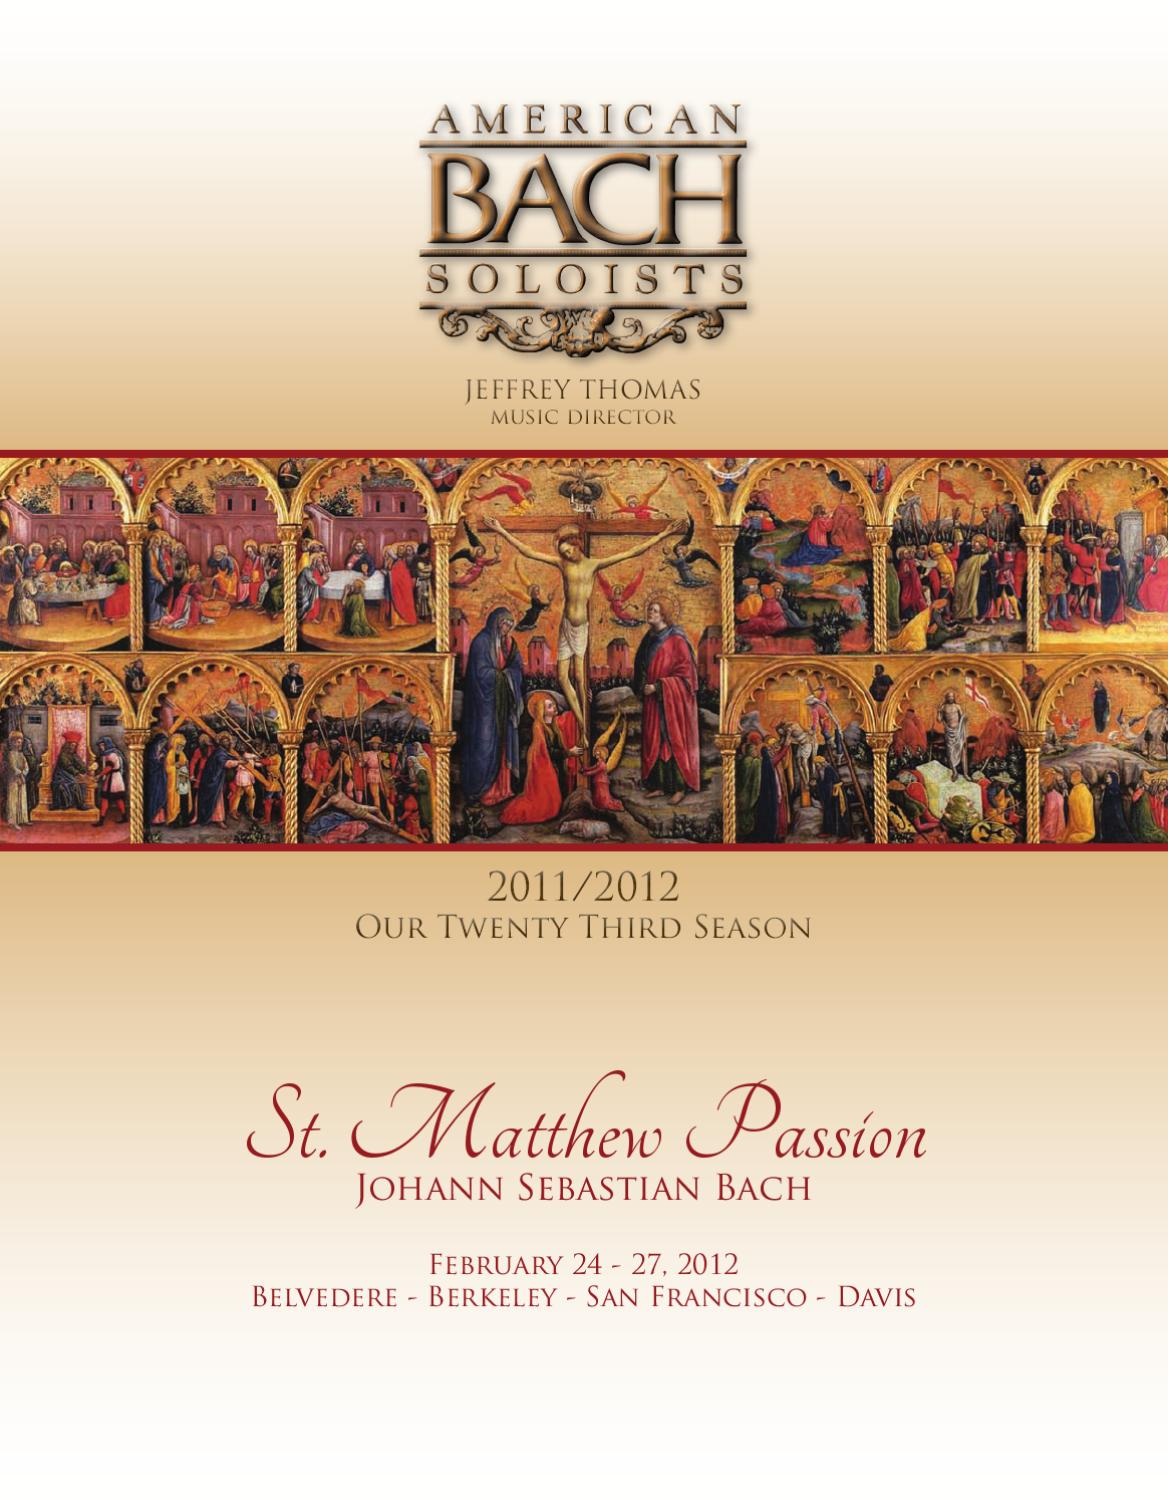 2012-02-24 St. Matthew Passion by American Bach Soloists - issuu